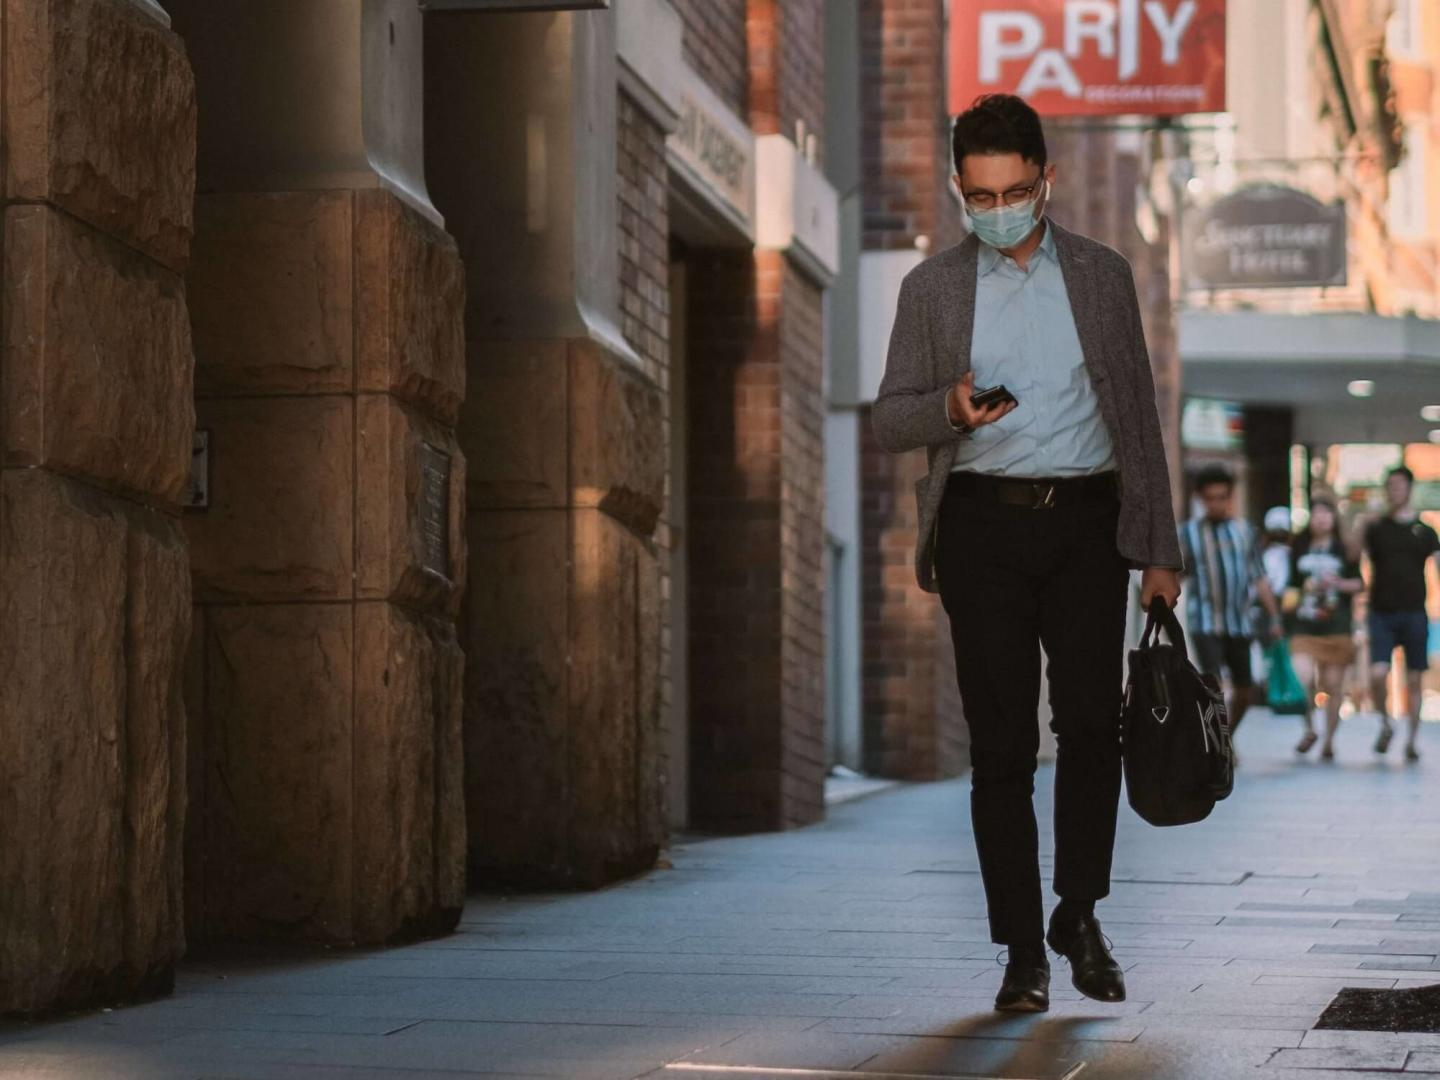 an image of a person wearing a mask walking down a street looking at their phone